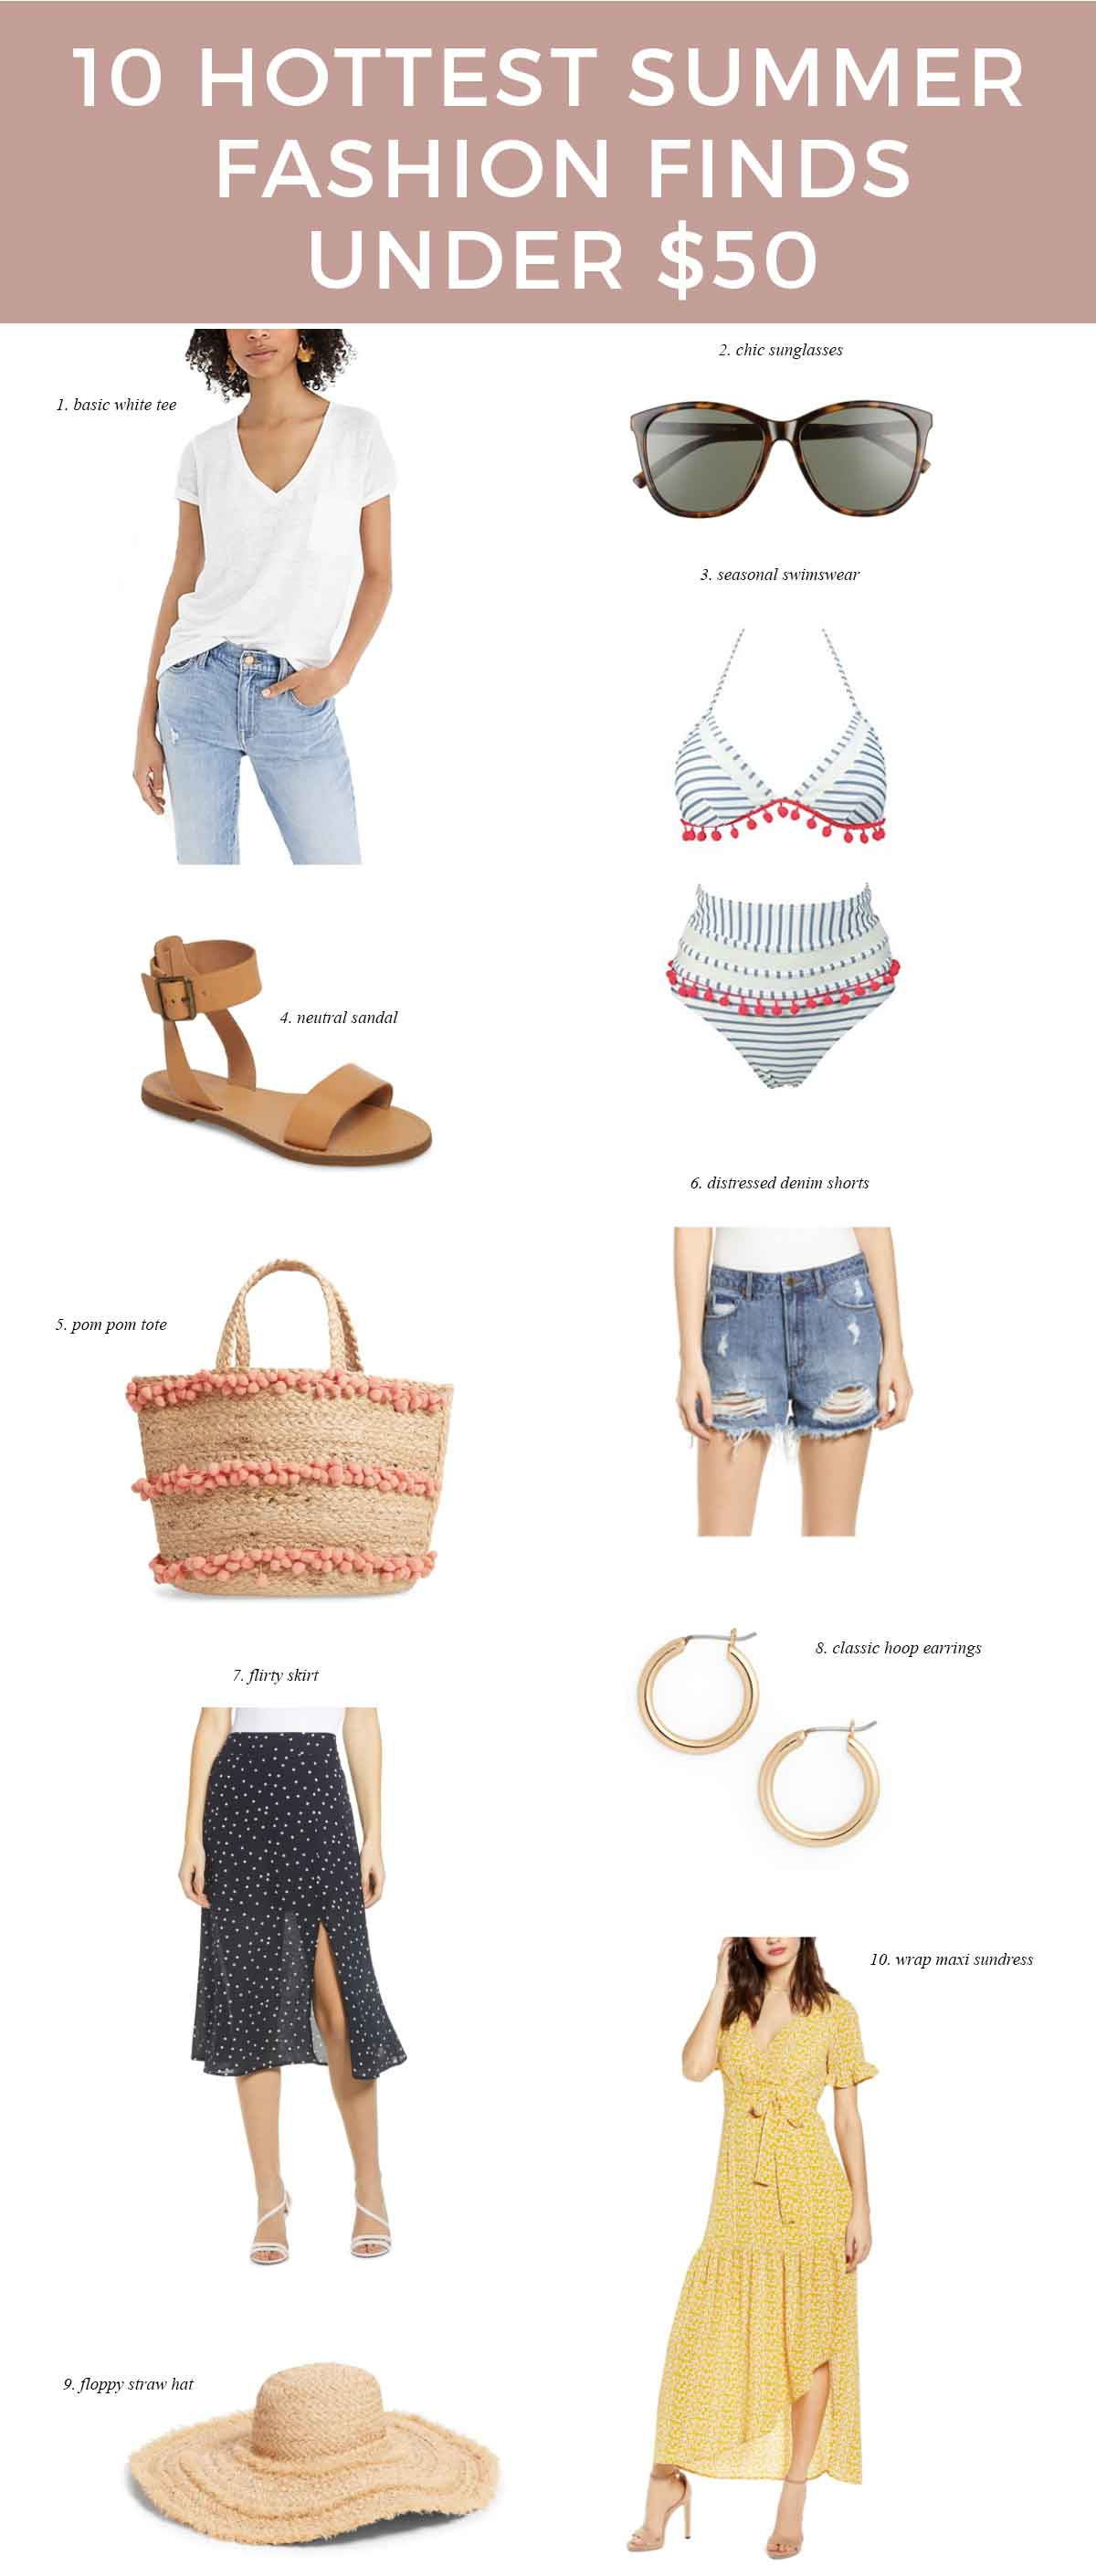 Hottest-summer-fashion-finds-under-$50-budget-friendly-style-blogger-summer-outfits